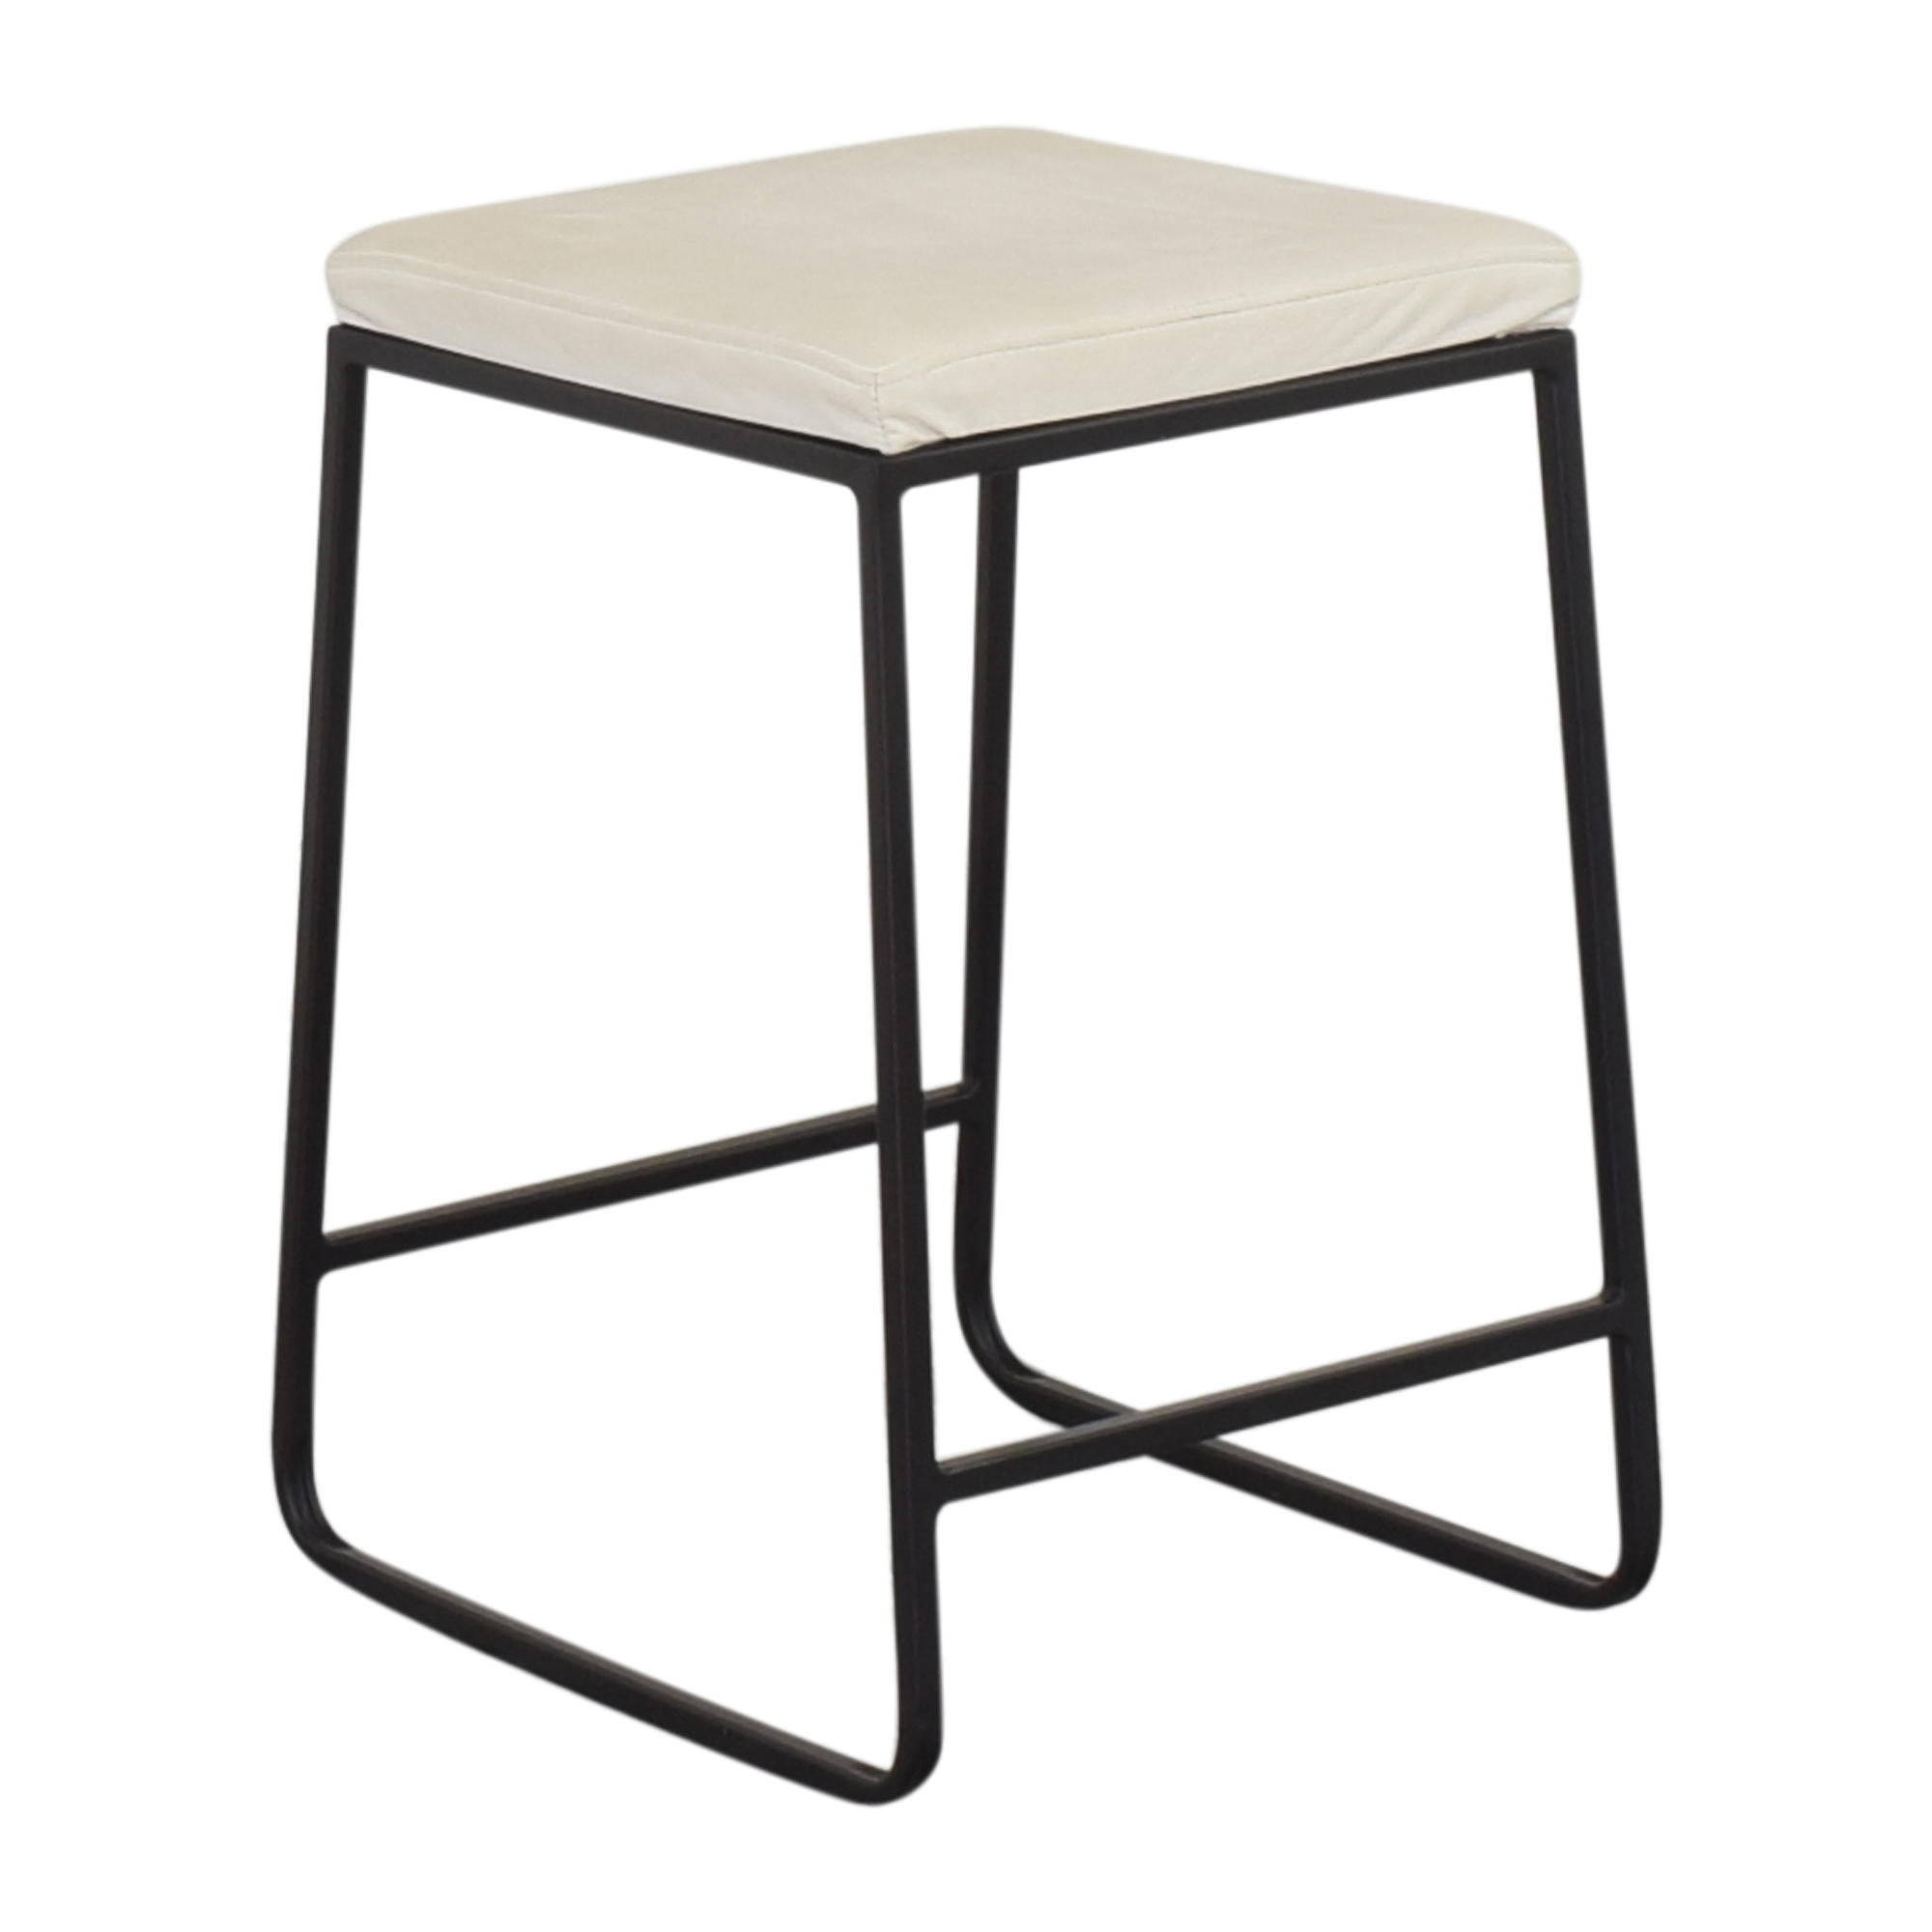 Room & Board Room & Board Collins Counter Stool price